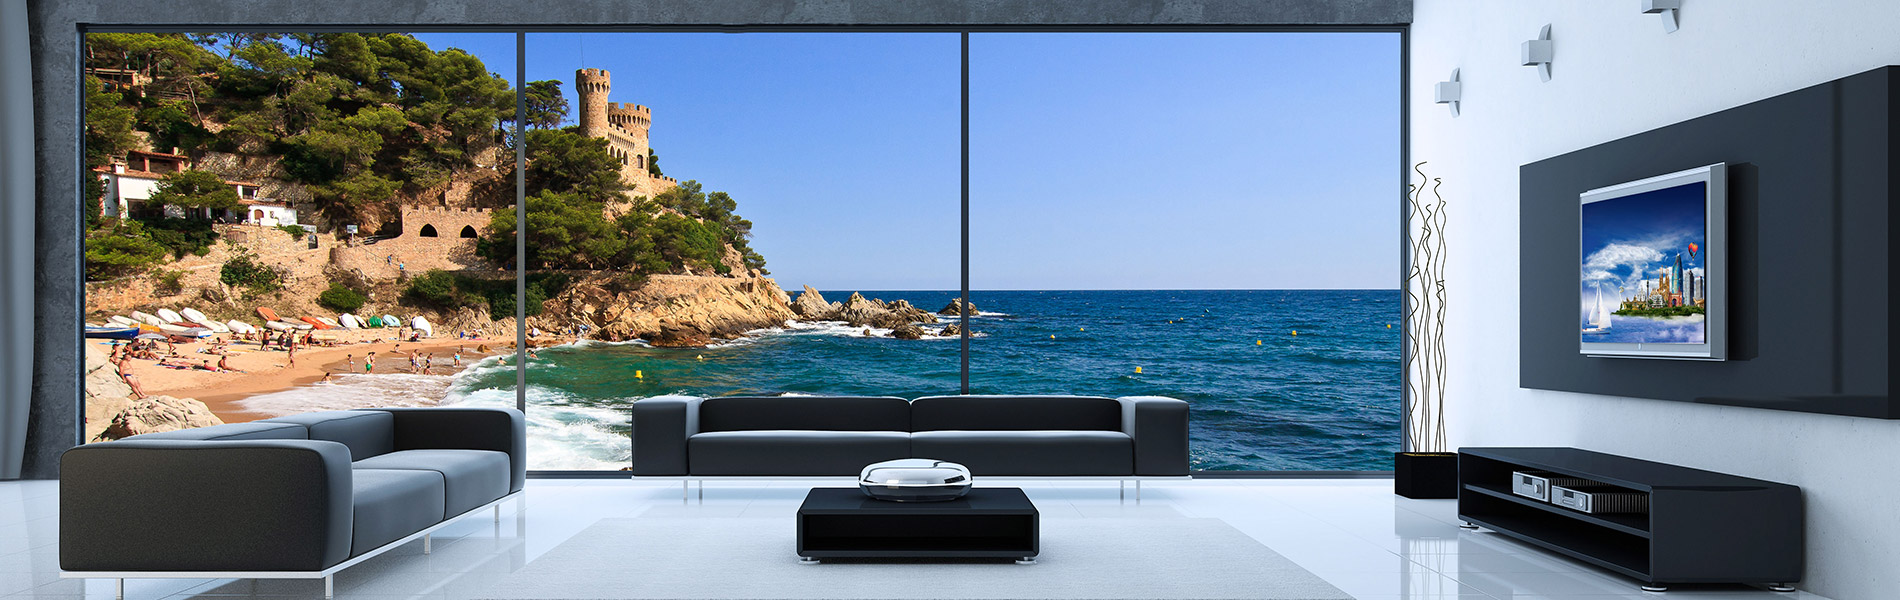 Inmobiliarias Lloret De Mar | Lighthouse Costa Brava